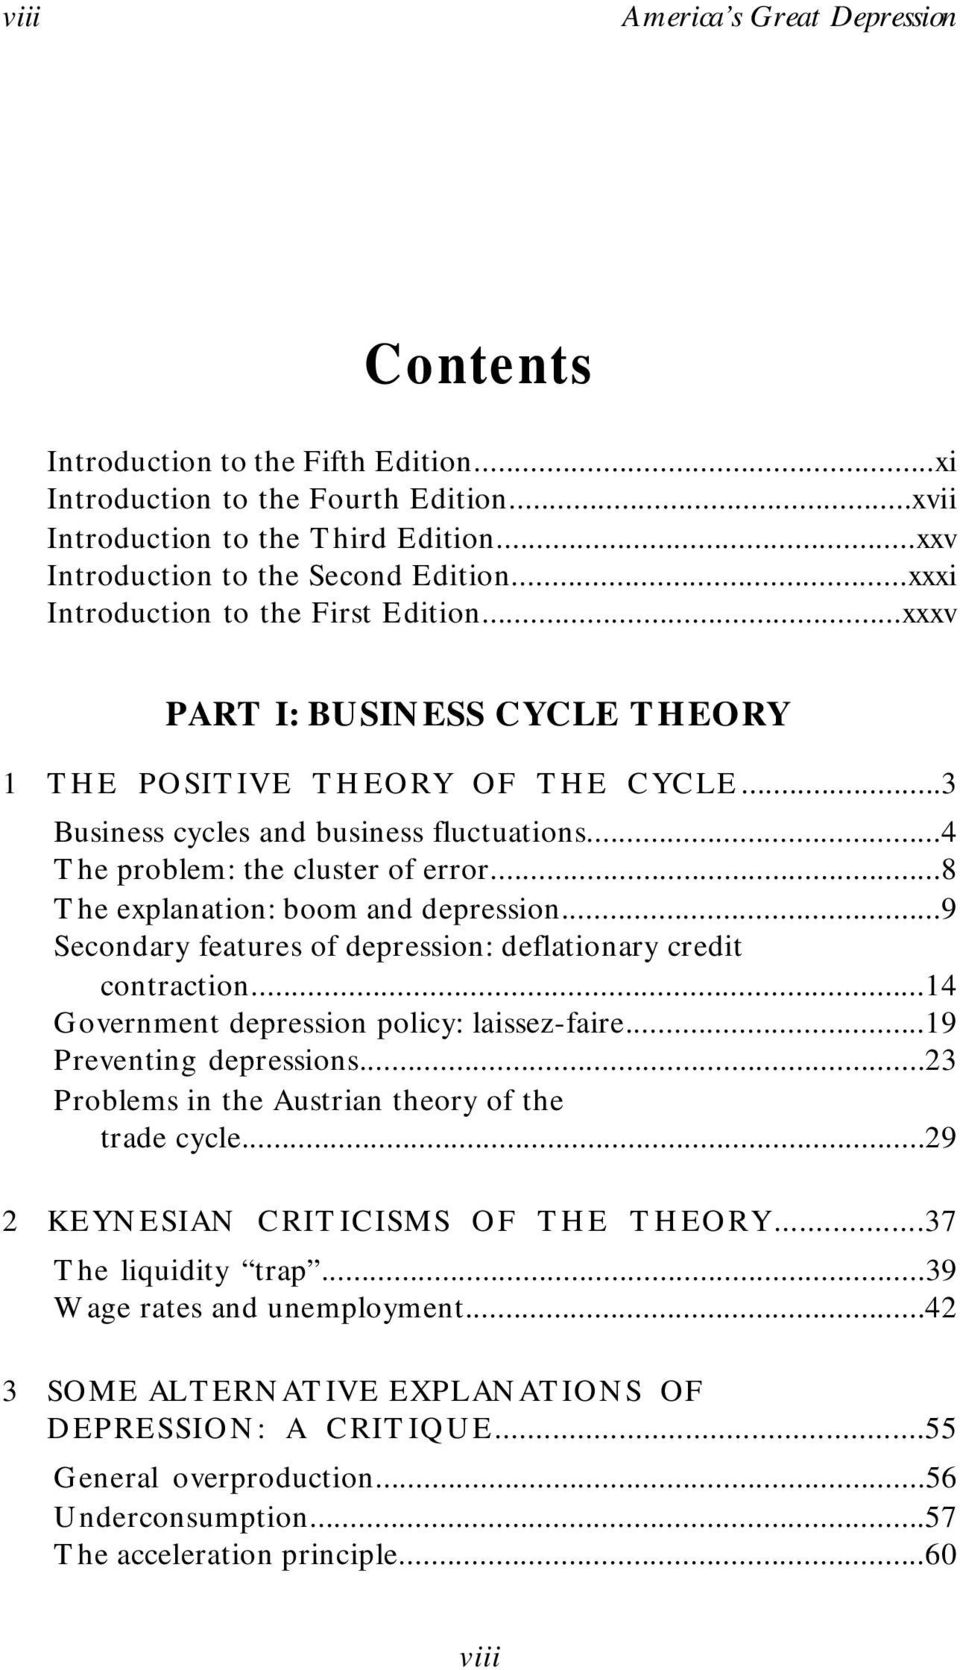 ..8 The explanation: boom and depression...9 Secondary features of depression: deflationary credit contraction...14 Government depression policy: laissez-faire...19 Preventing depressions.